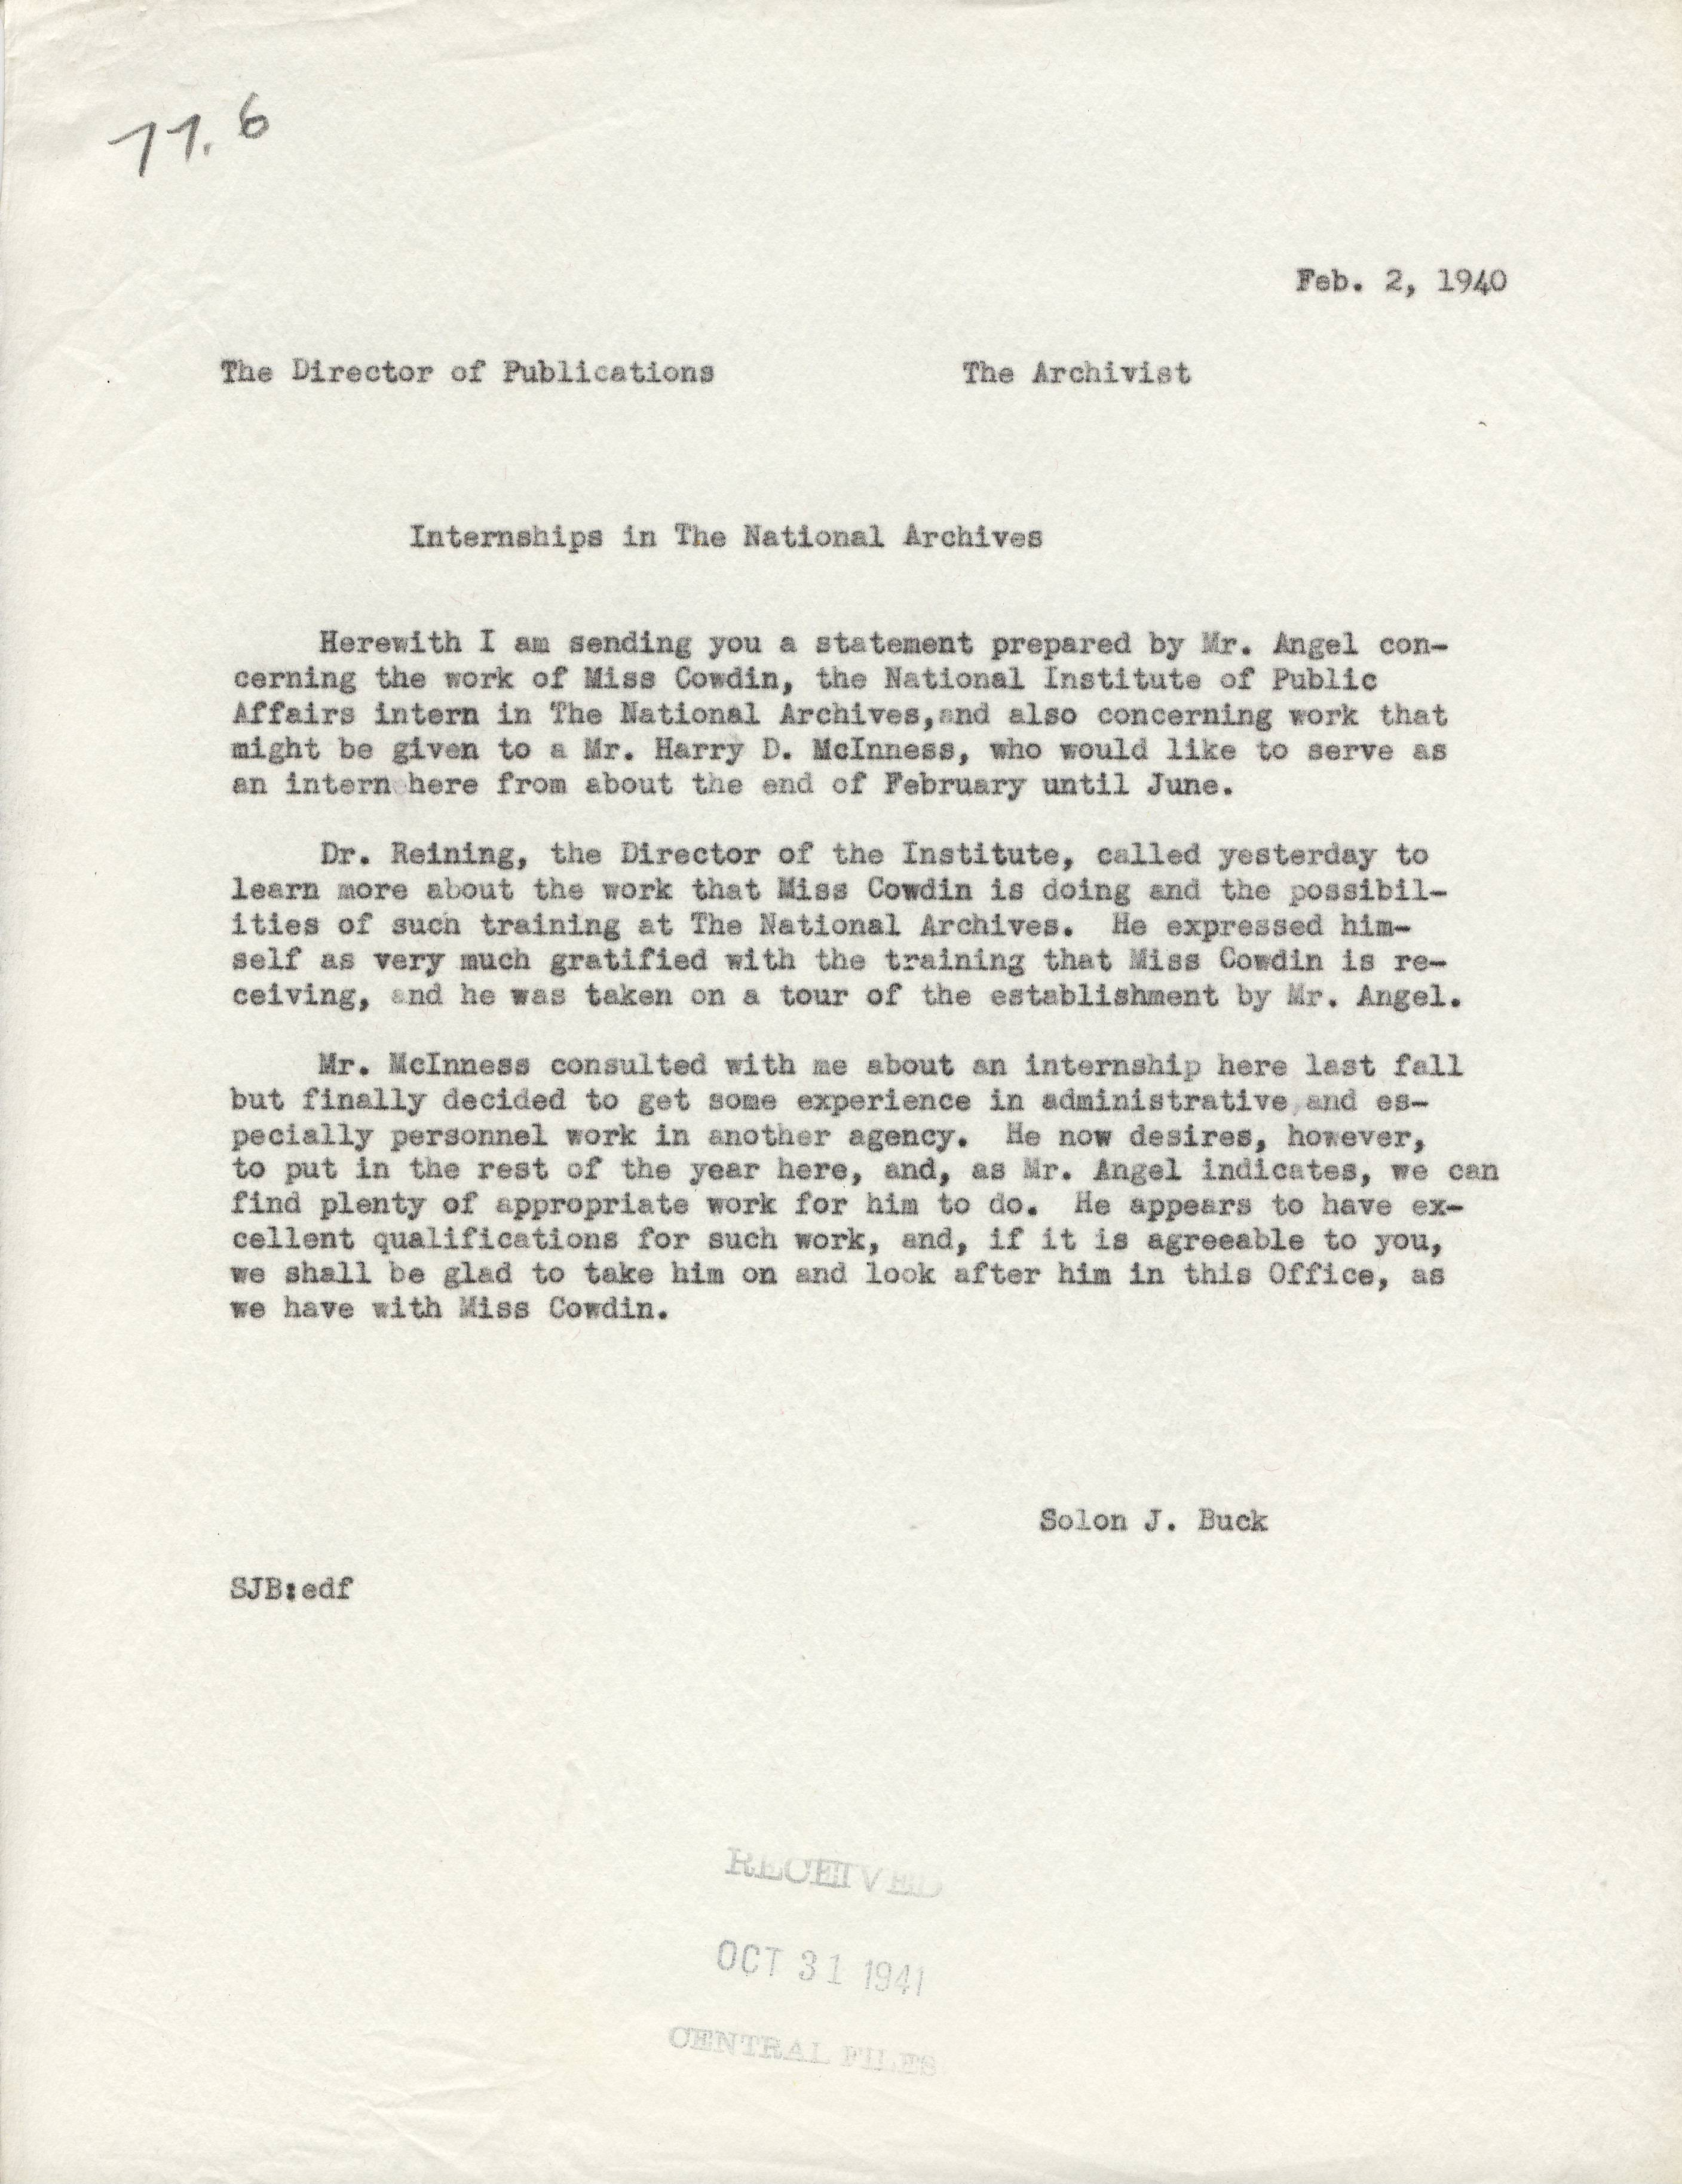 Report on First Intern at Archives, 1940, cover letter - RG 64, A1 1, file 77.6 Internships, box 40